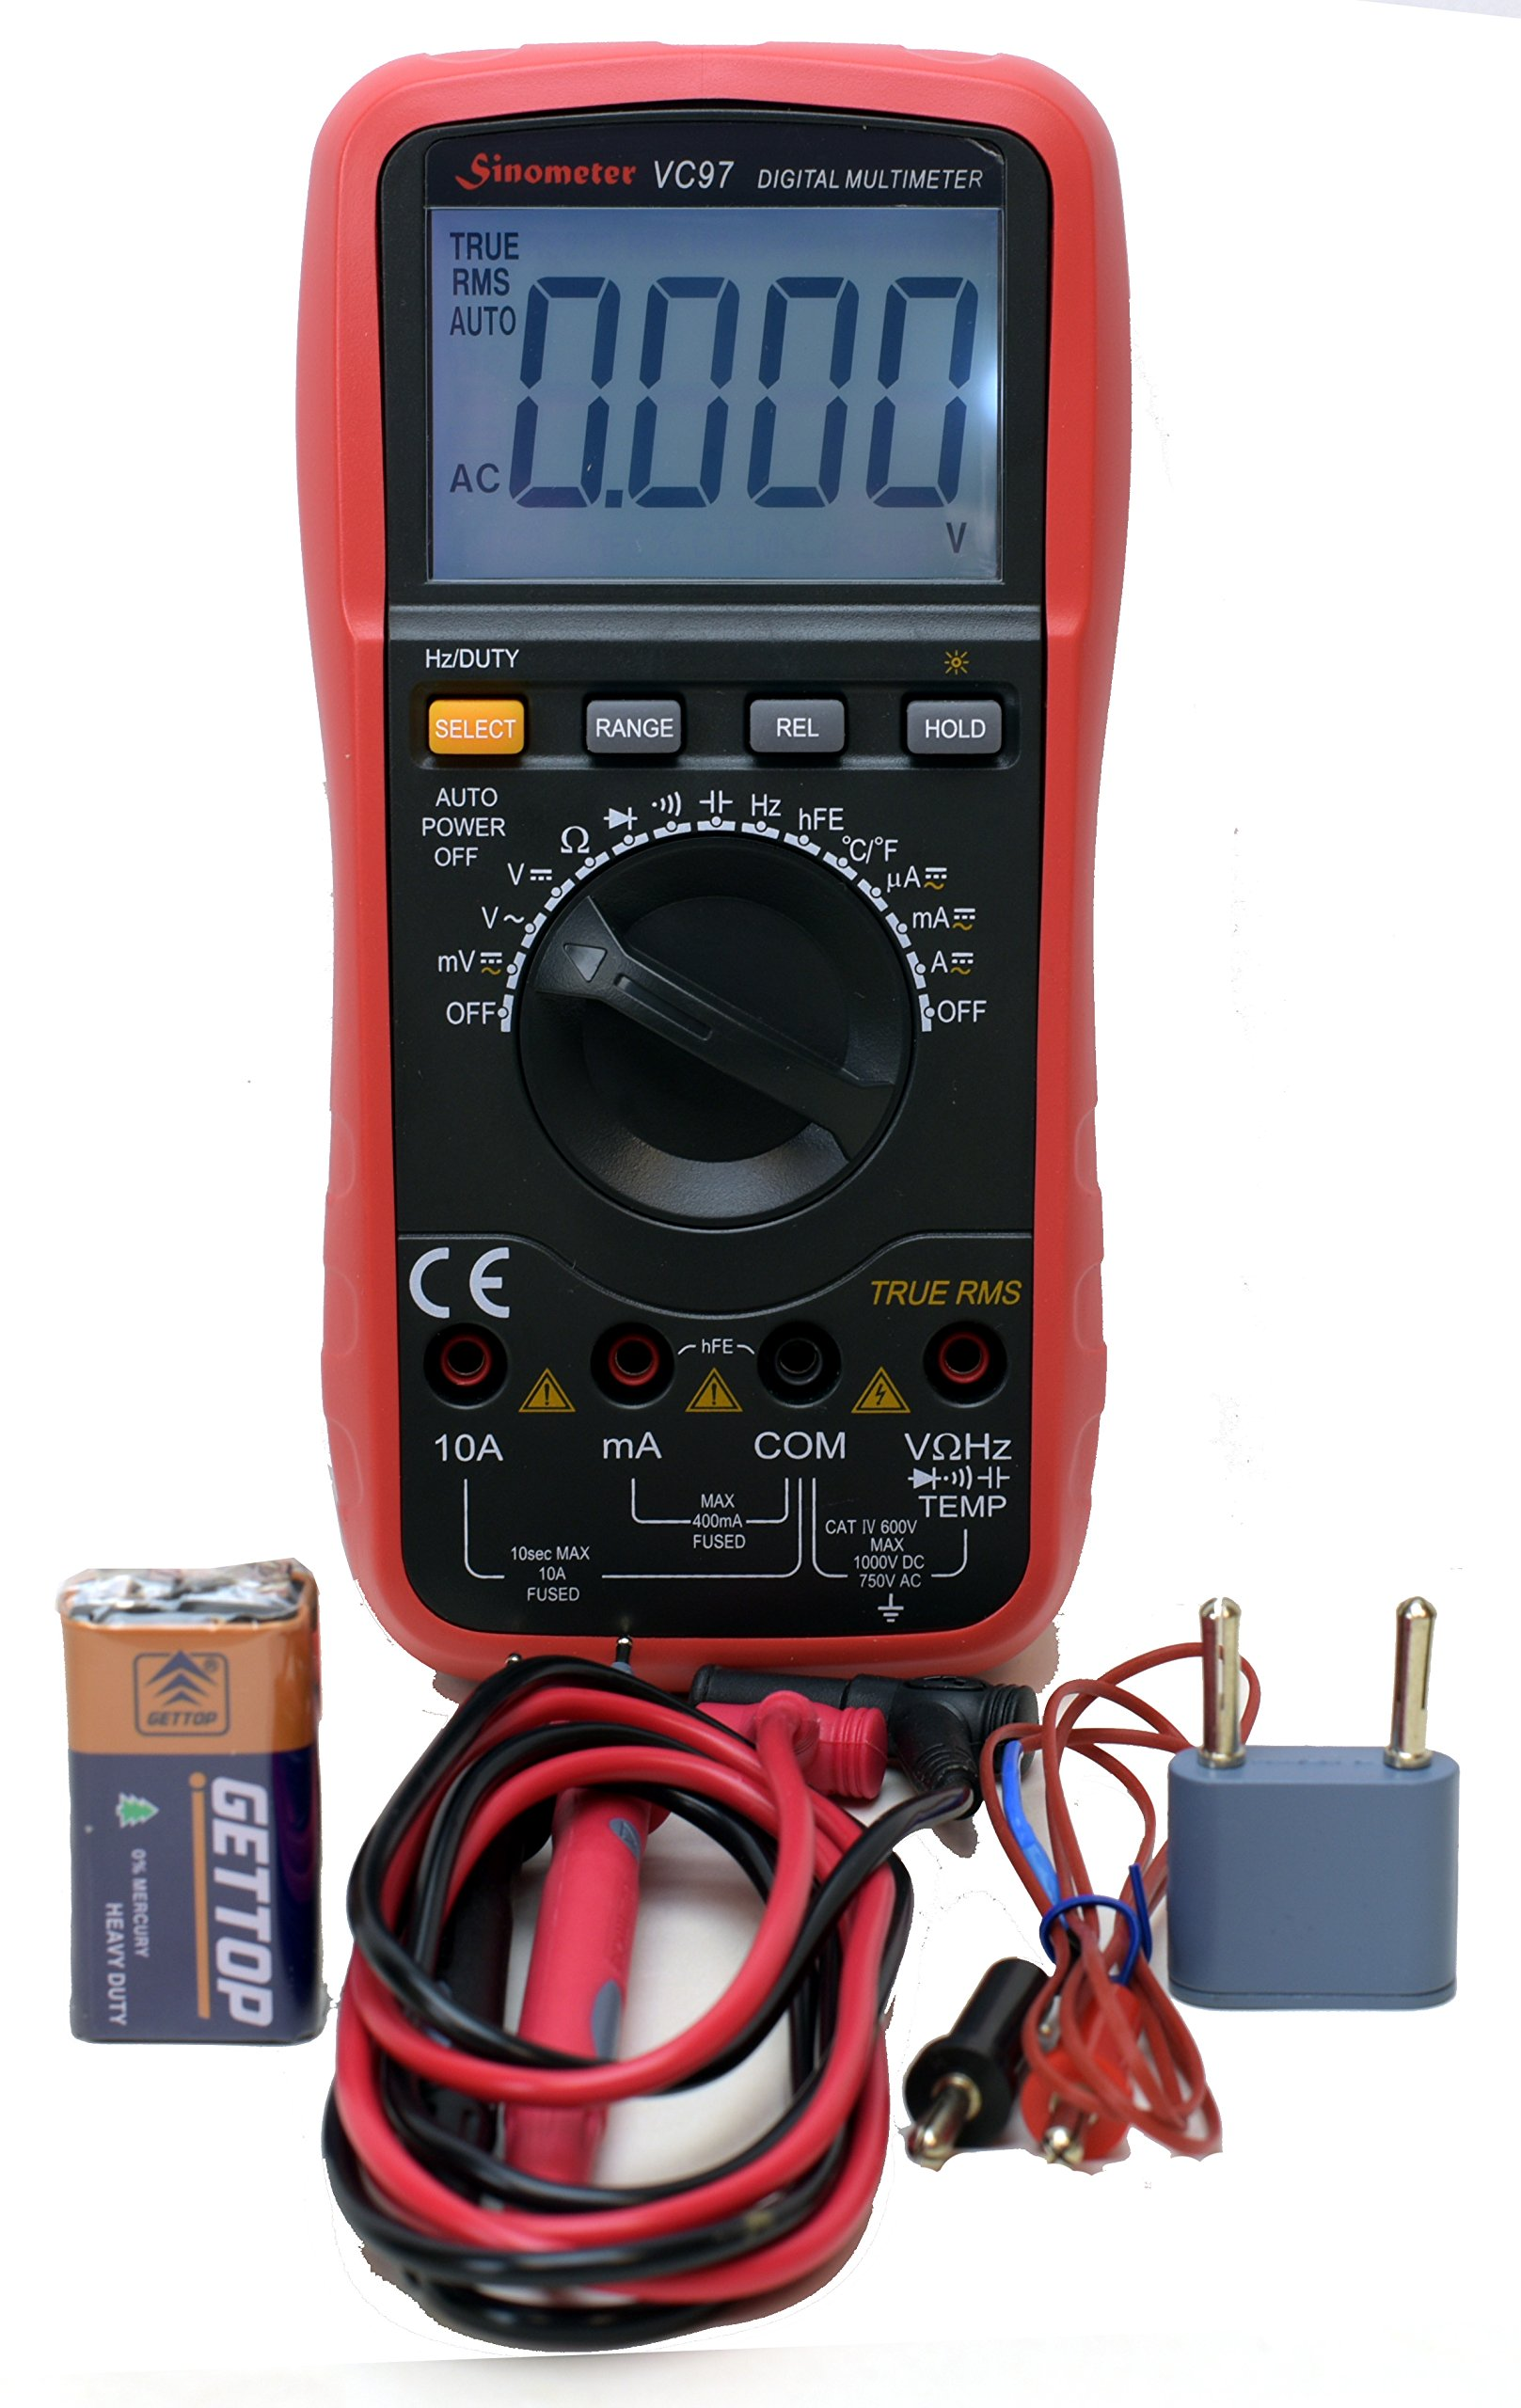 Sinometer VC97 Auto Ranging True RMS Digital Multimeter with Thermometer,Cap and Freq, High Accuracy and Resolution